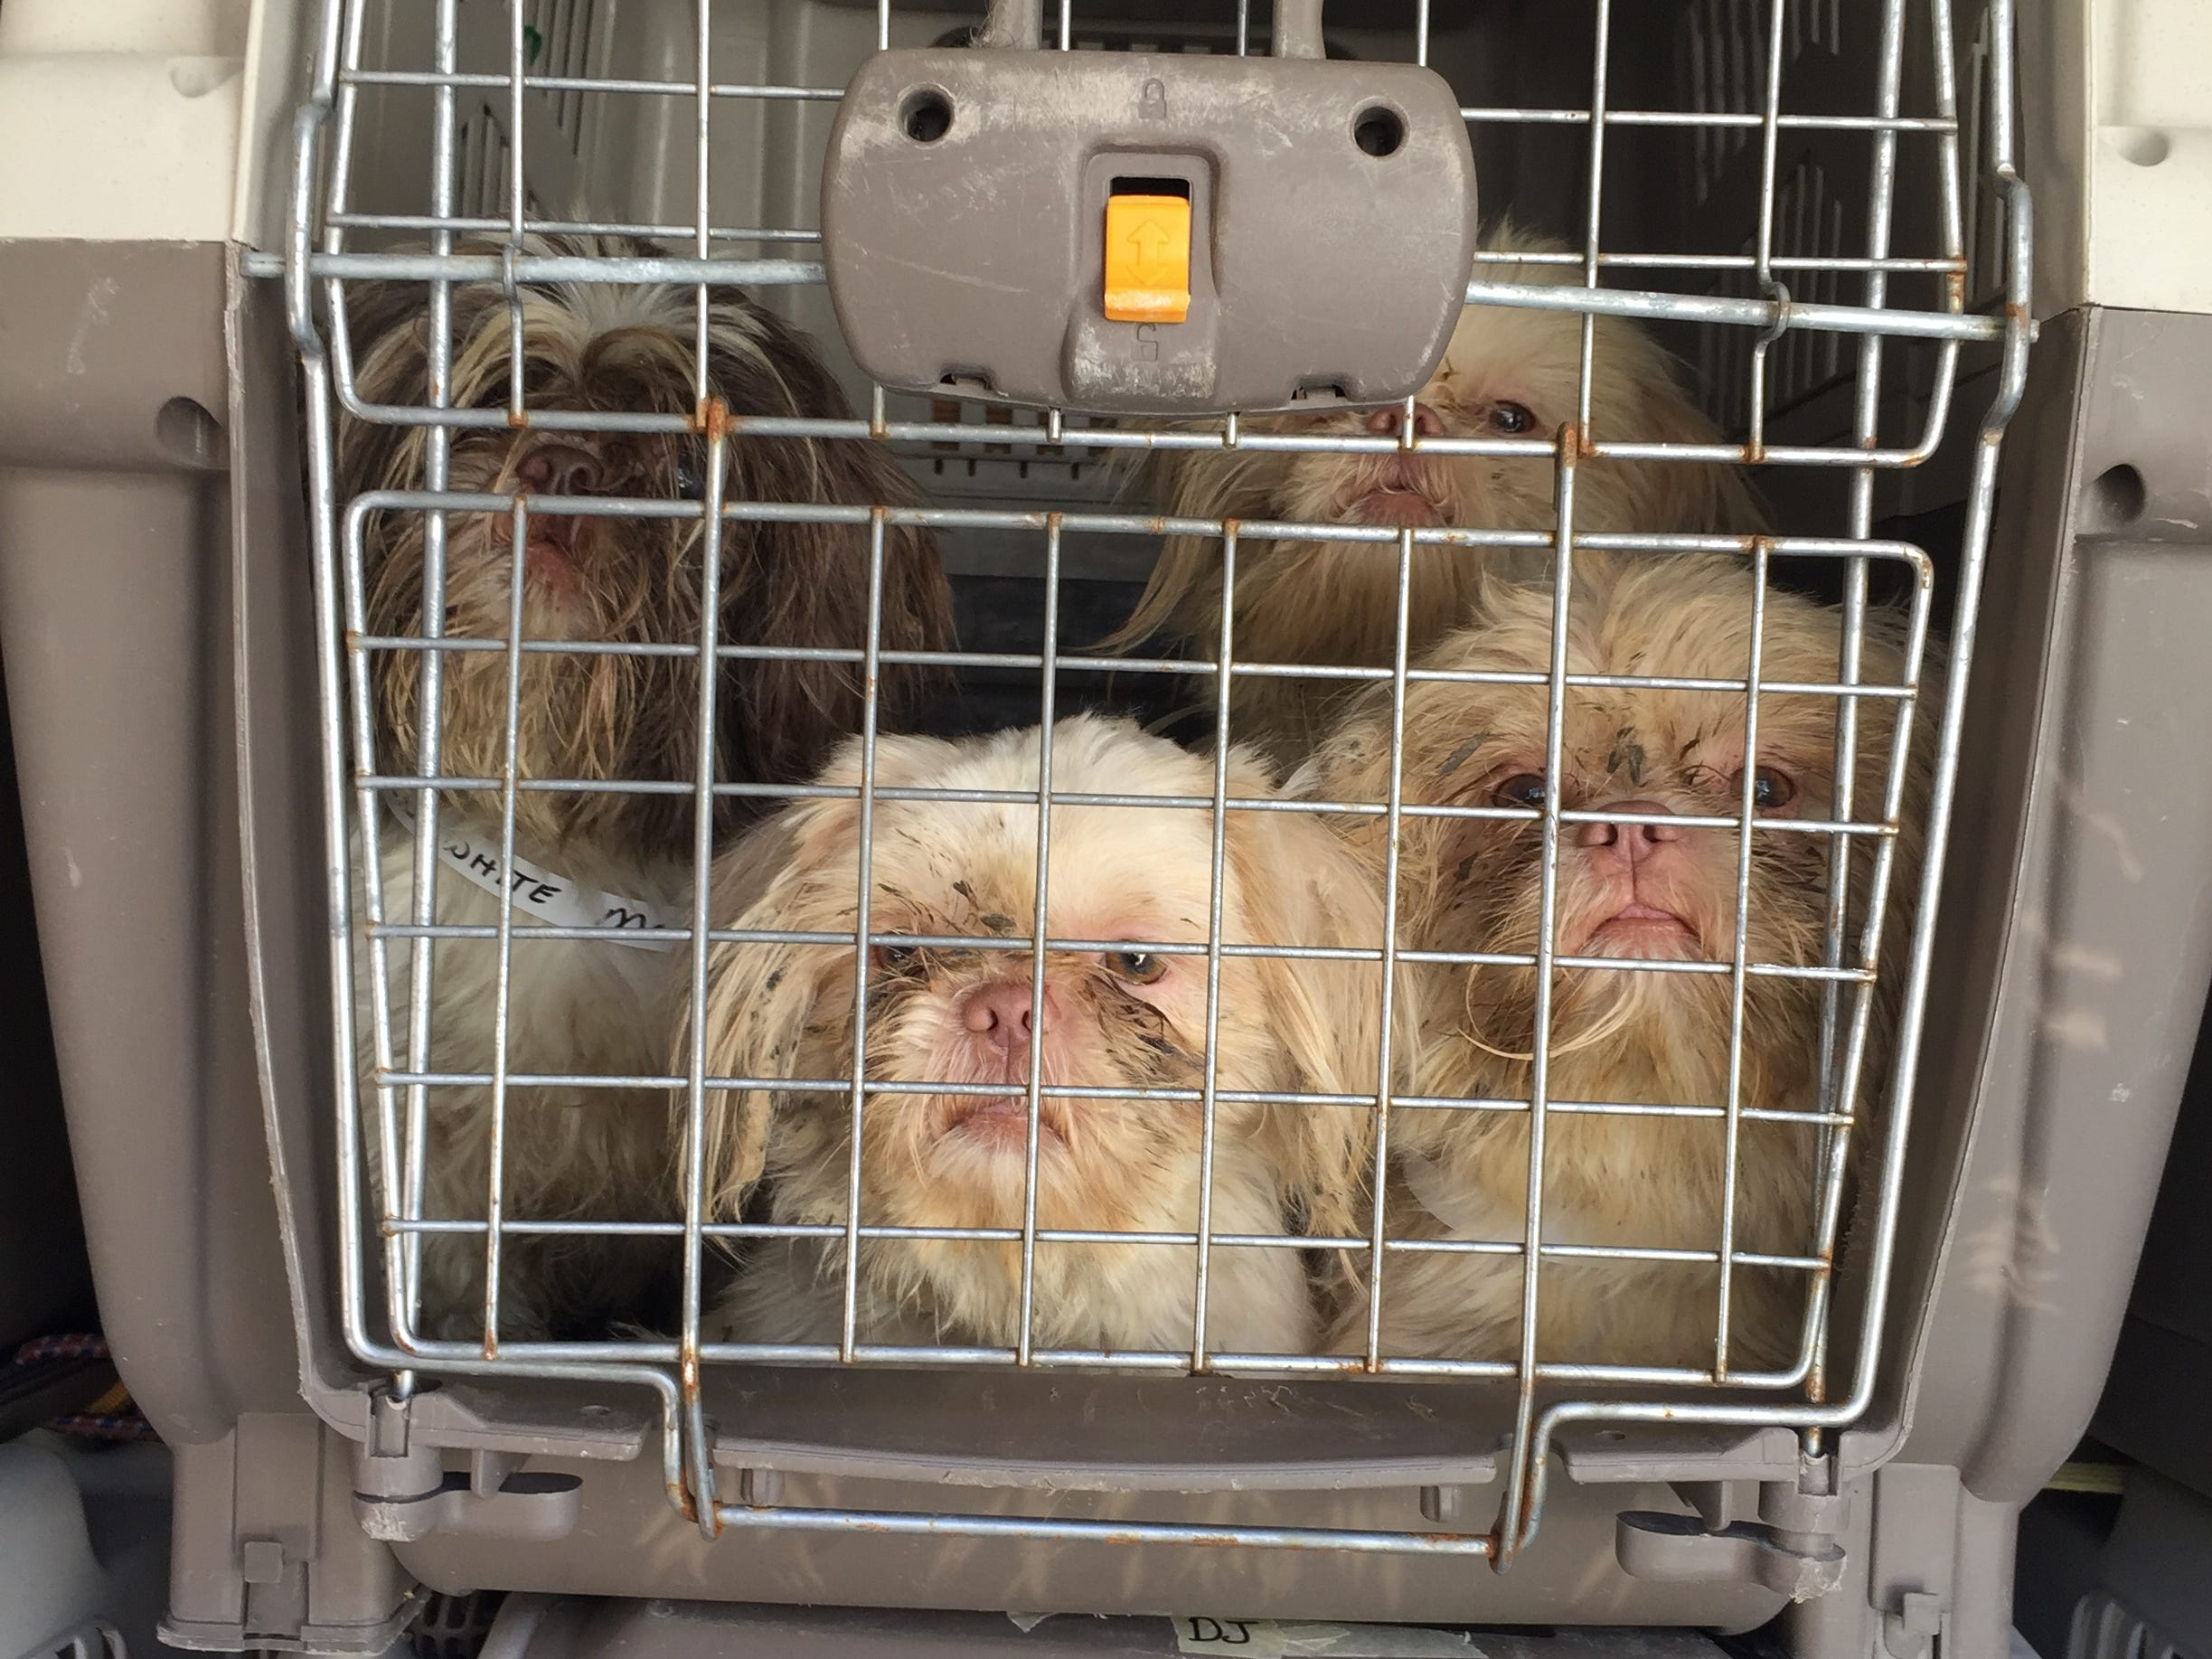 Rescue the Animals, SPCA worked with the Callahan County Sheriff's Office to seize 78 Shih Tzu dogs from a rural residence east of Abilene, Texas on Wednesday, Nov. 14, 2018.